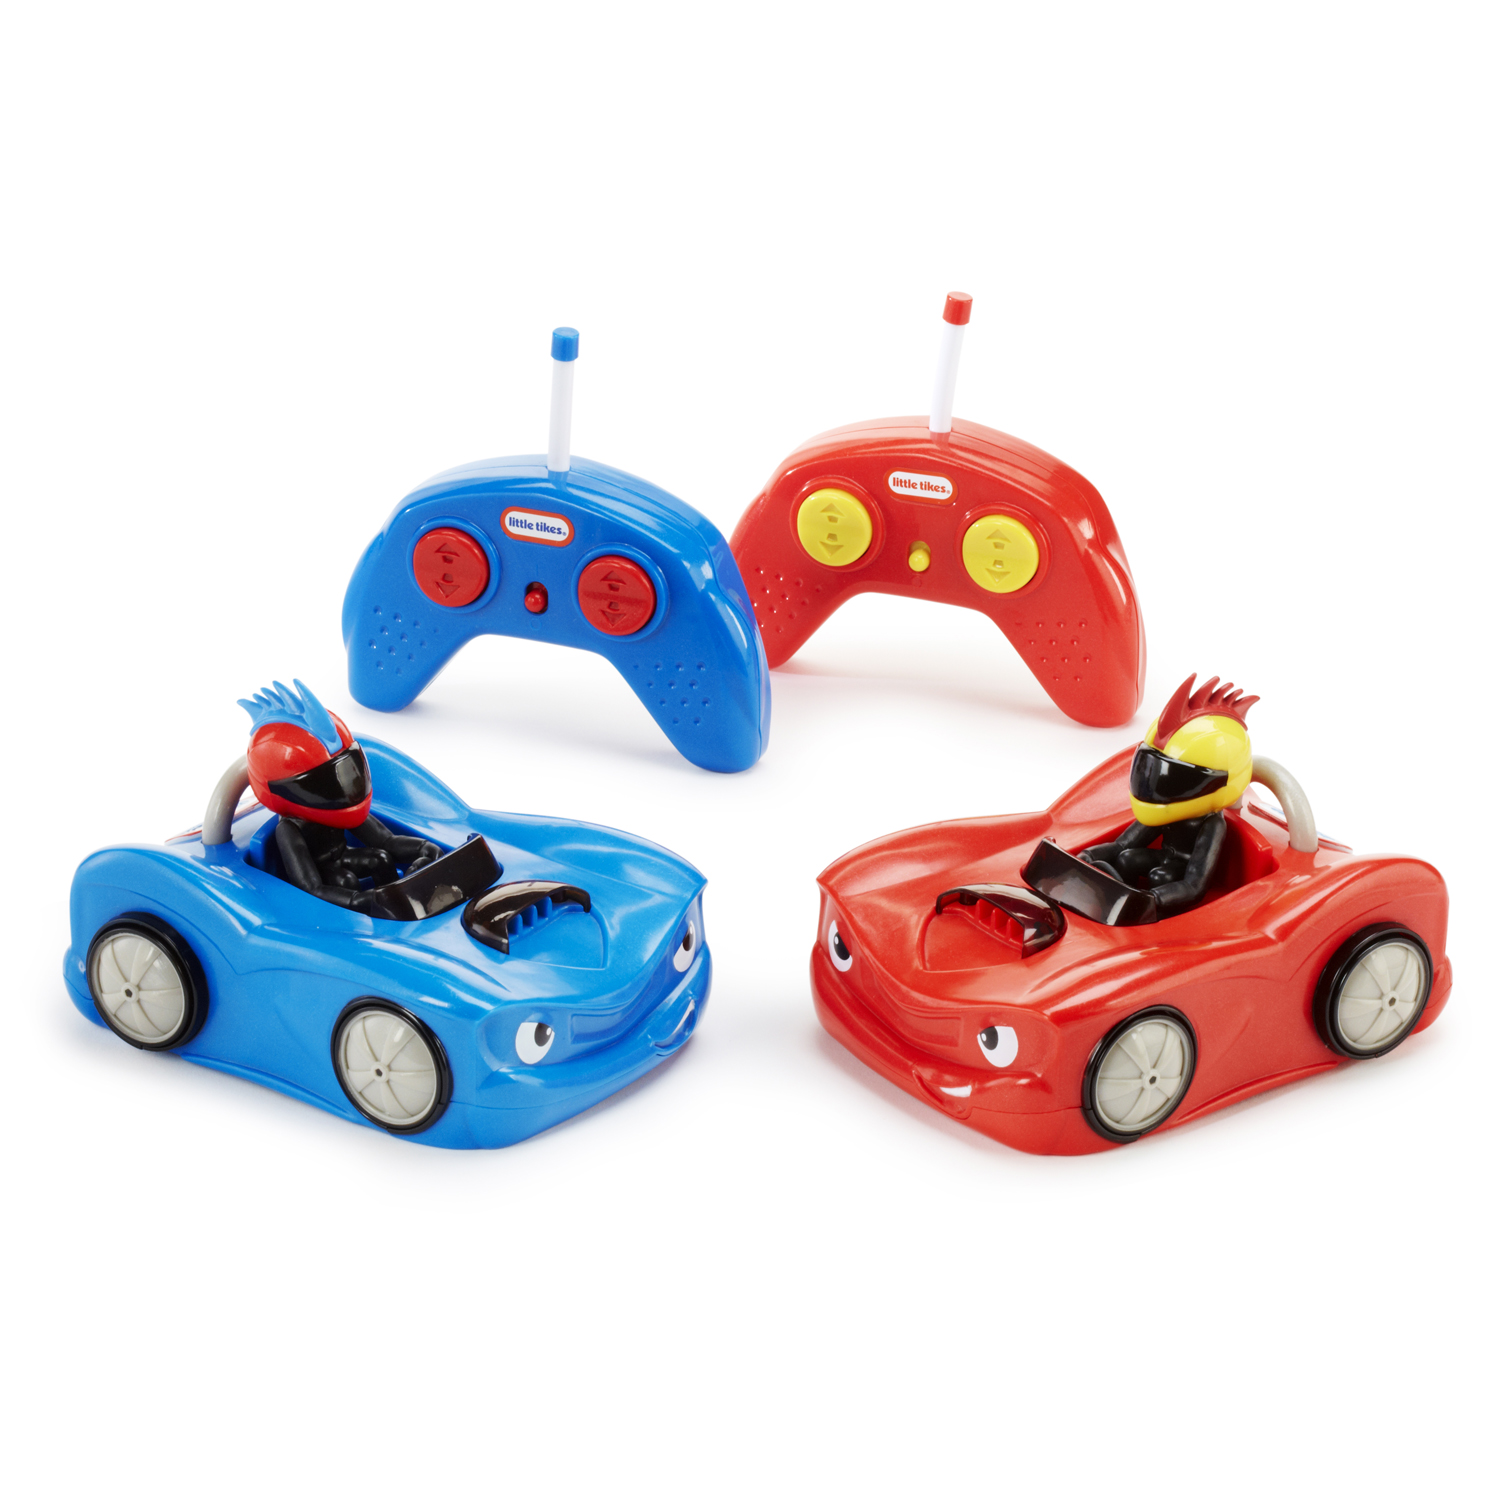 Little Tikes RC Bumper Cars - Set of 2